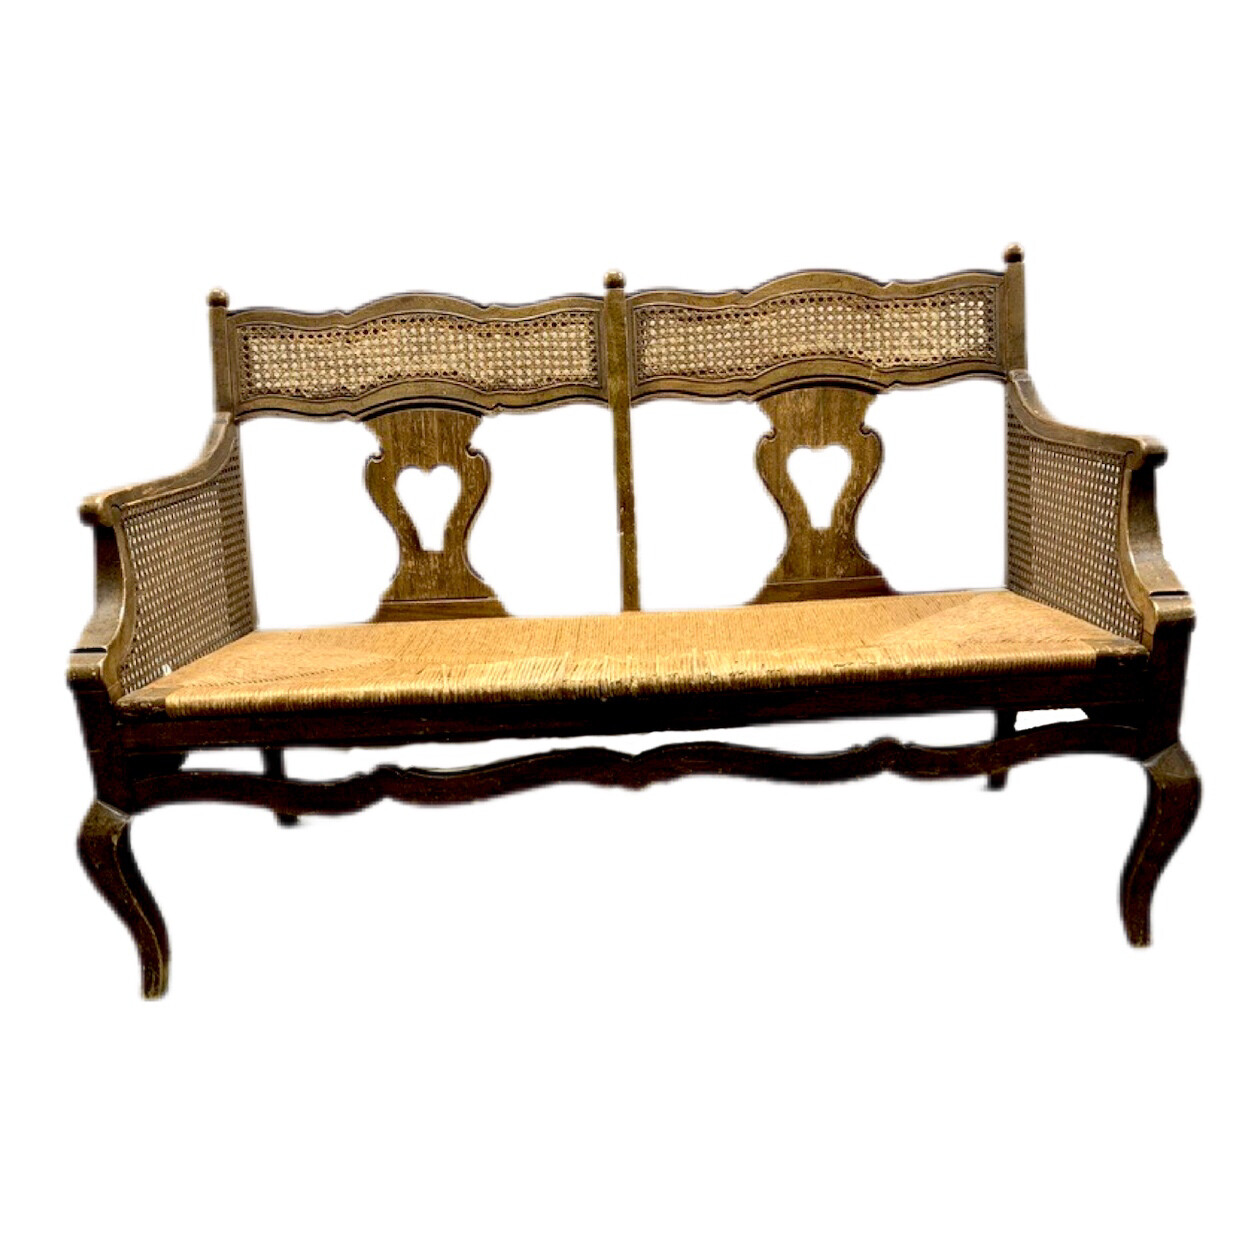 Antique 2 Seater Bench